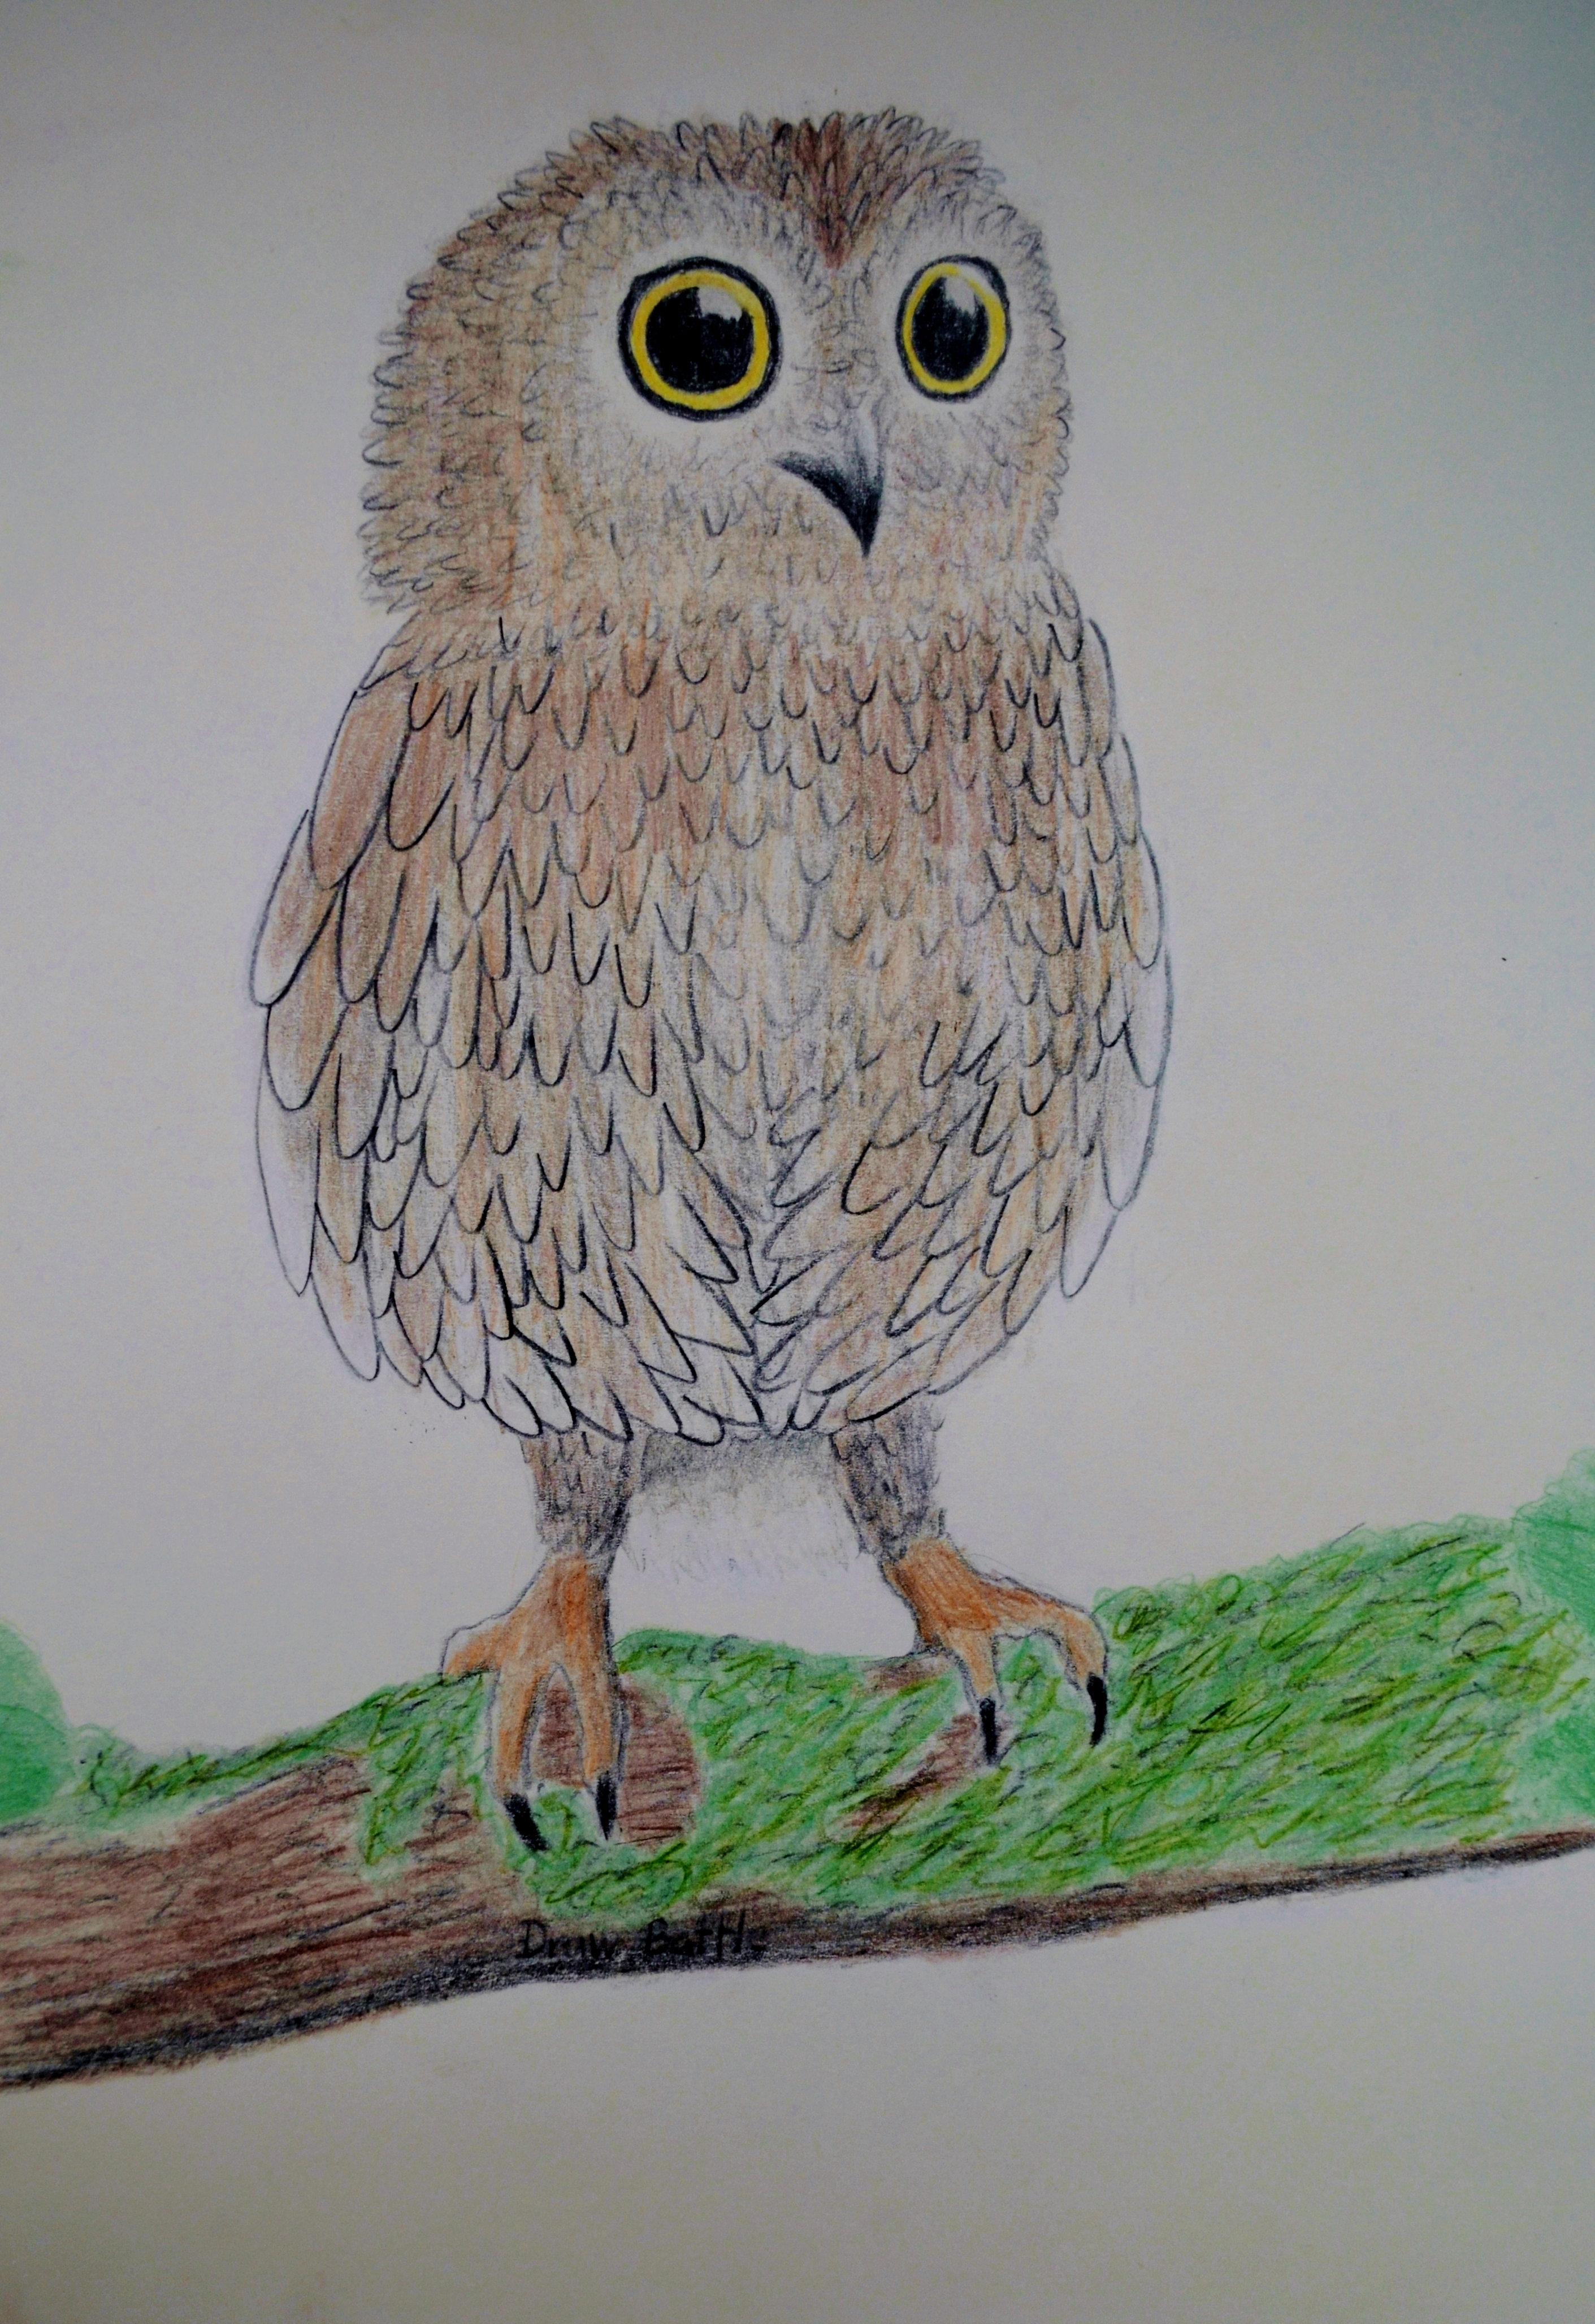 Uncategorized Baby Owl Drawing baby owl drawing by krupping on deviantart krupping